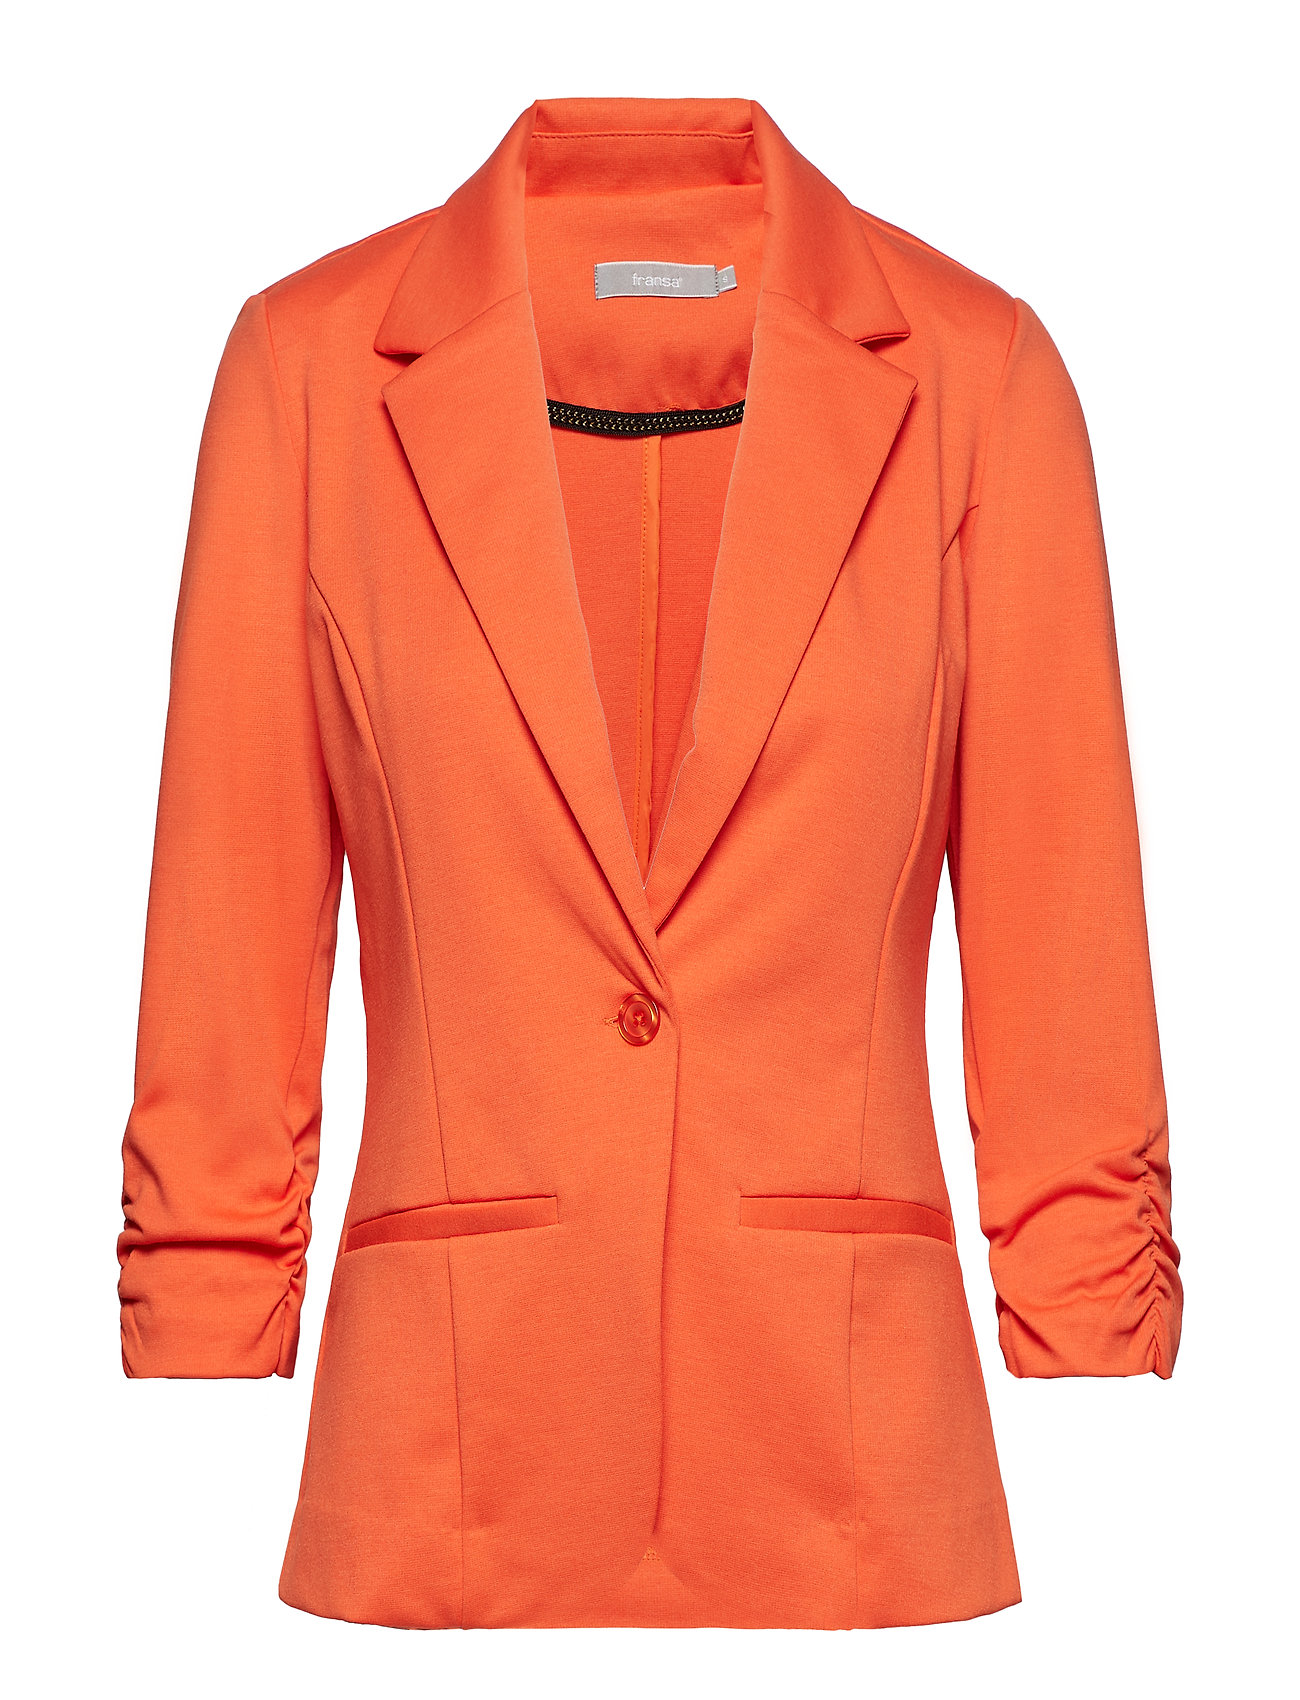 6c14a656 RED ORANGE Fransa Zablazer 1 Blazer blazere for dame - Pashion.dk